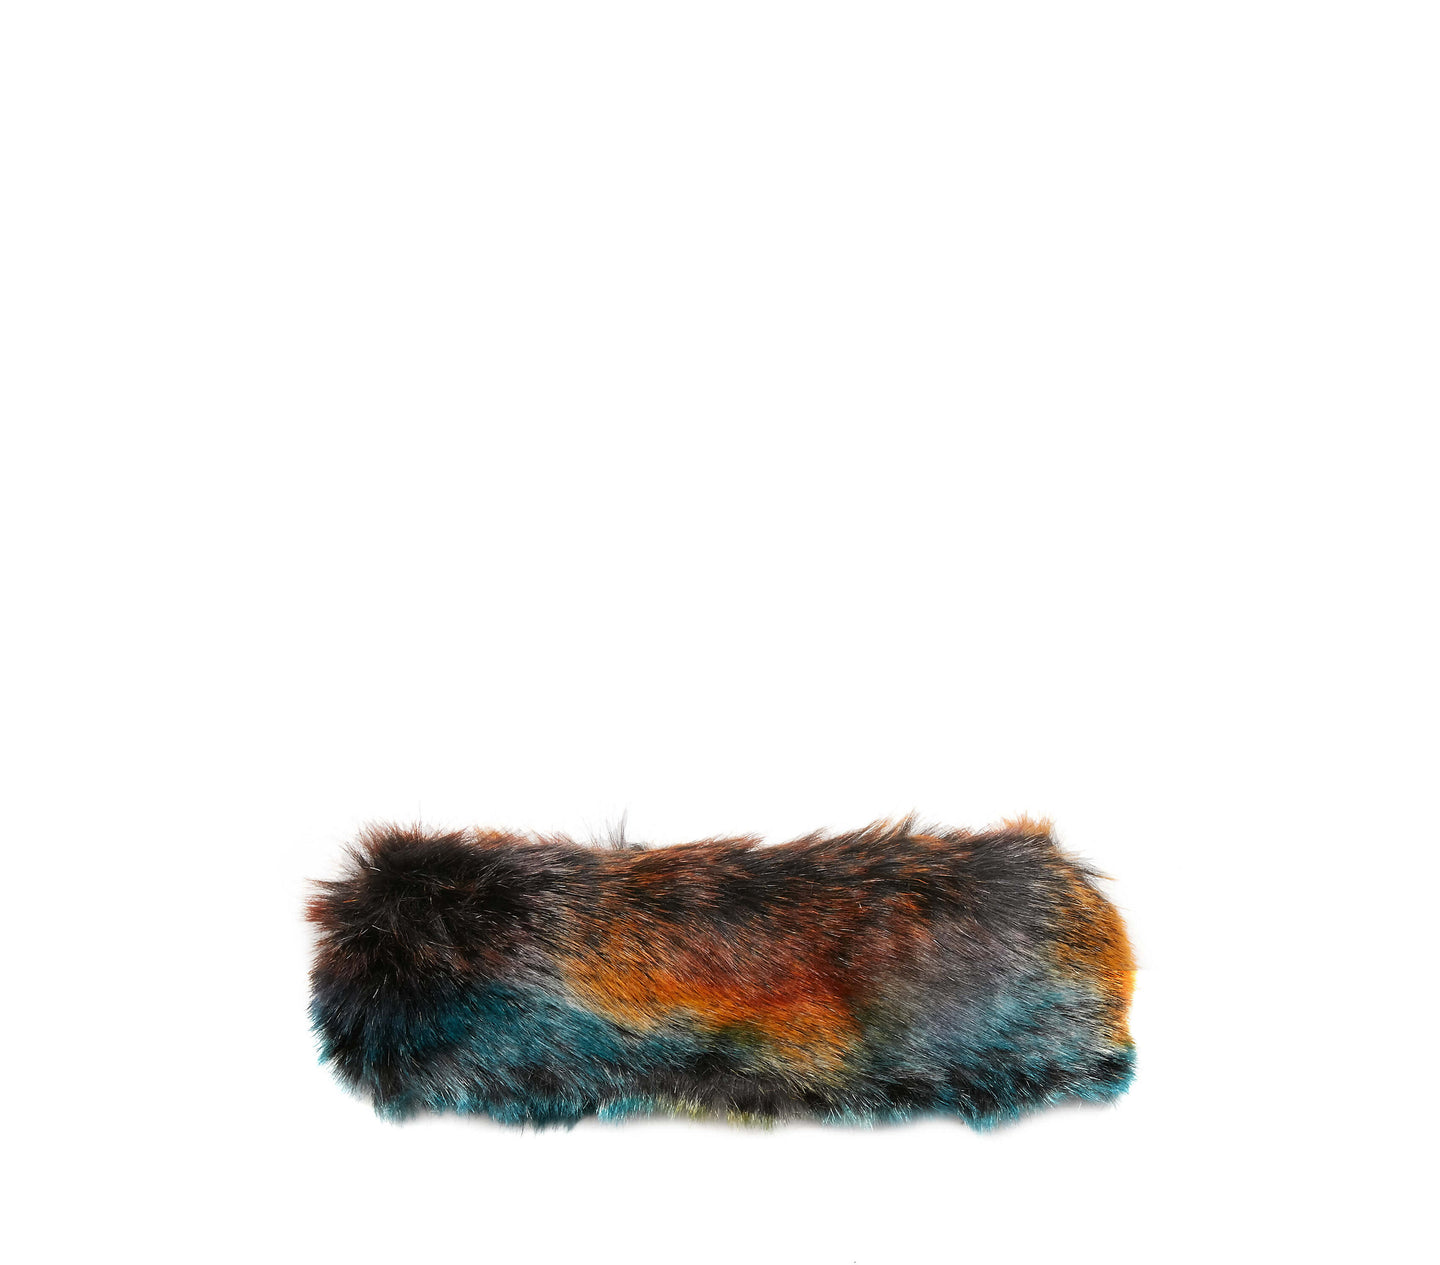 PARTY ANIMAL FAUX FUR HEADBAND MULTI - ACCESSORIES - Betsey Johnson